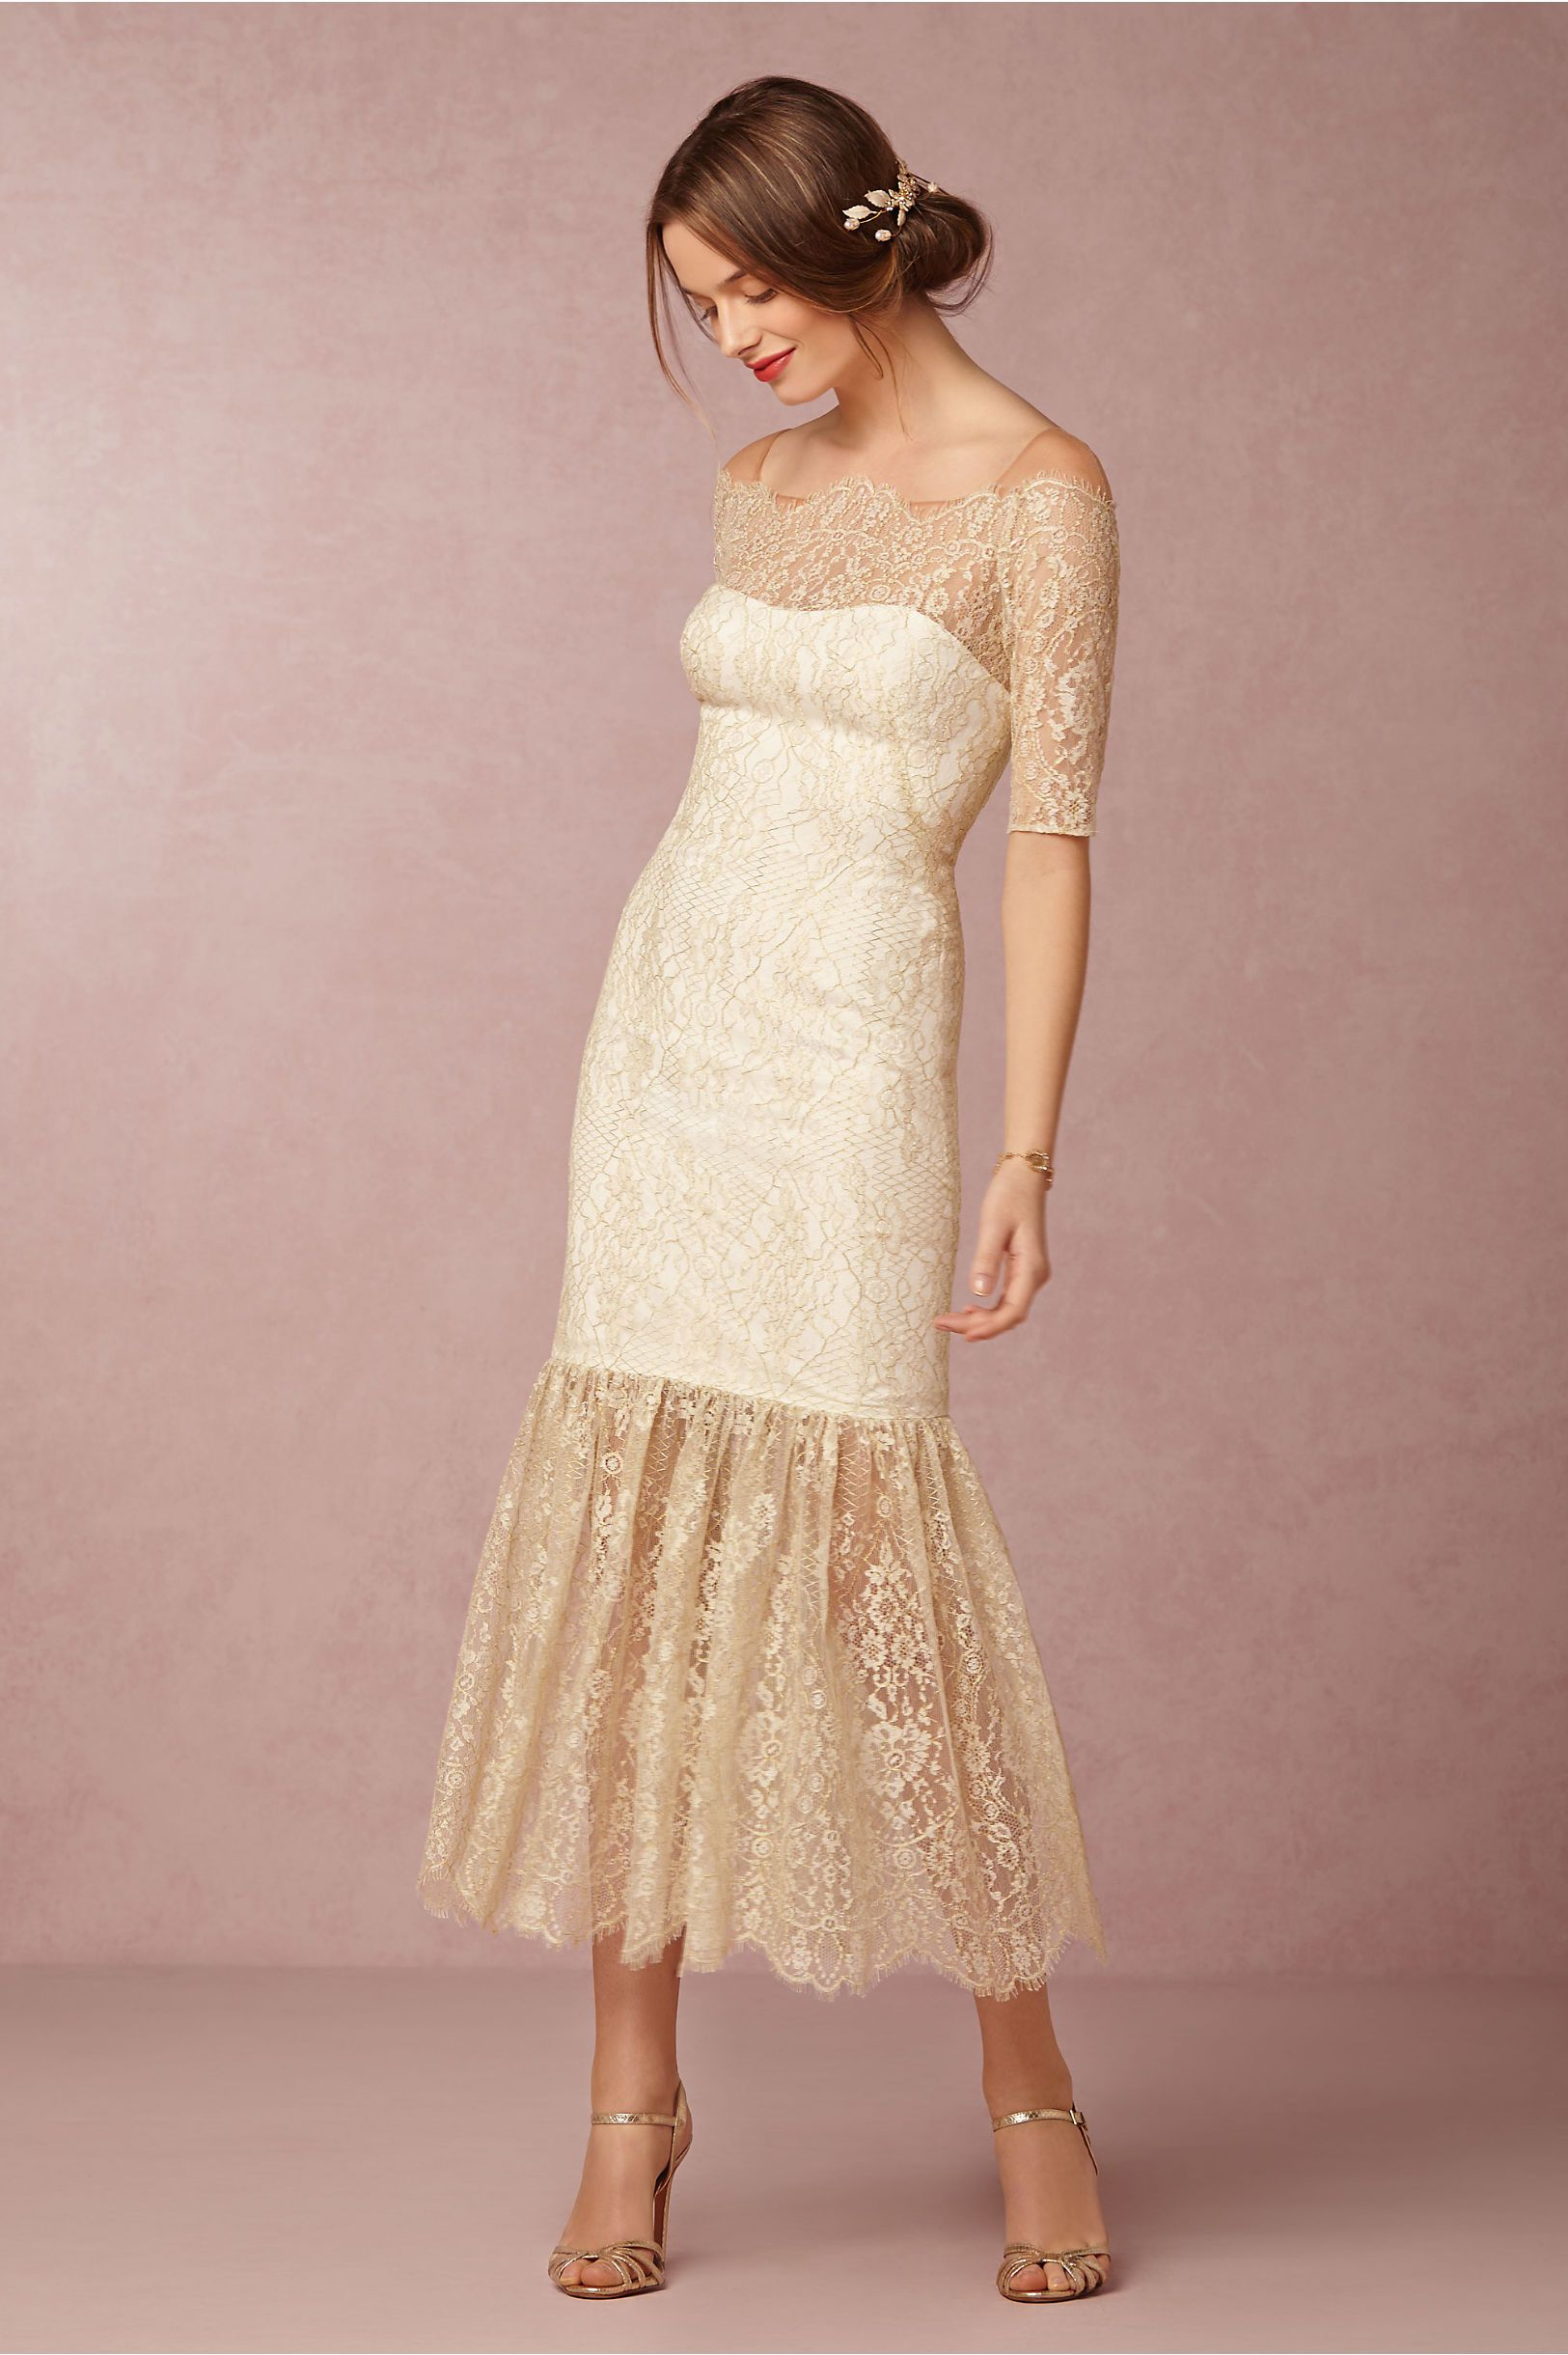 gold lace wedding dress | Mia Dress from Notte by Marchesa for ...